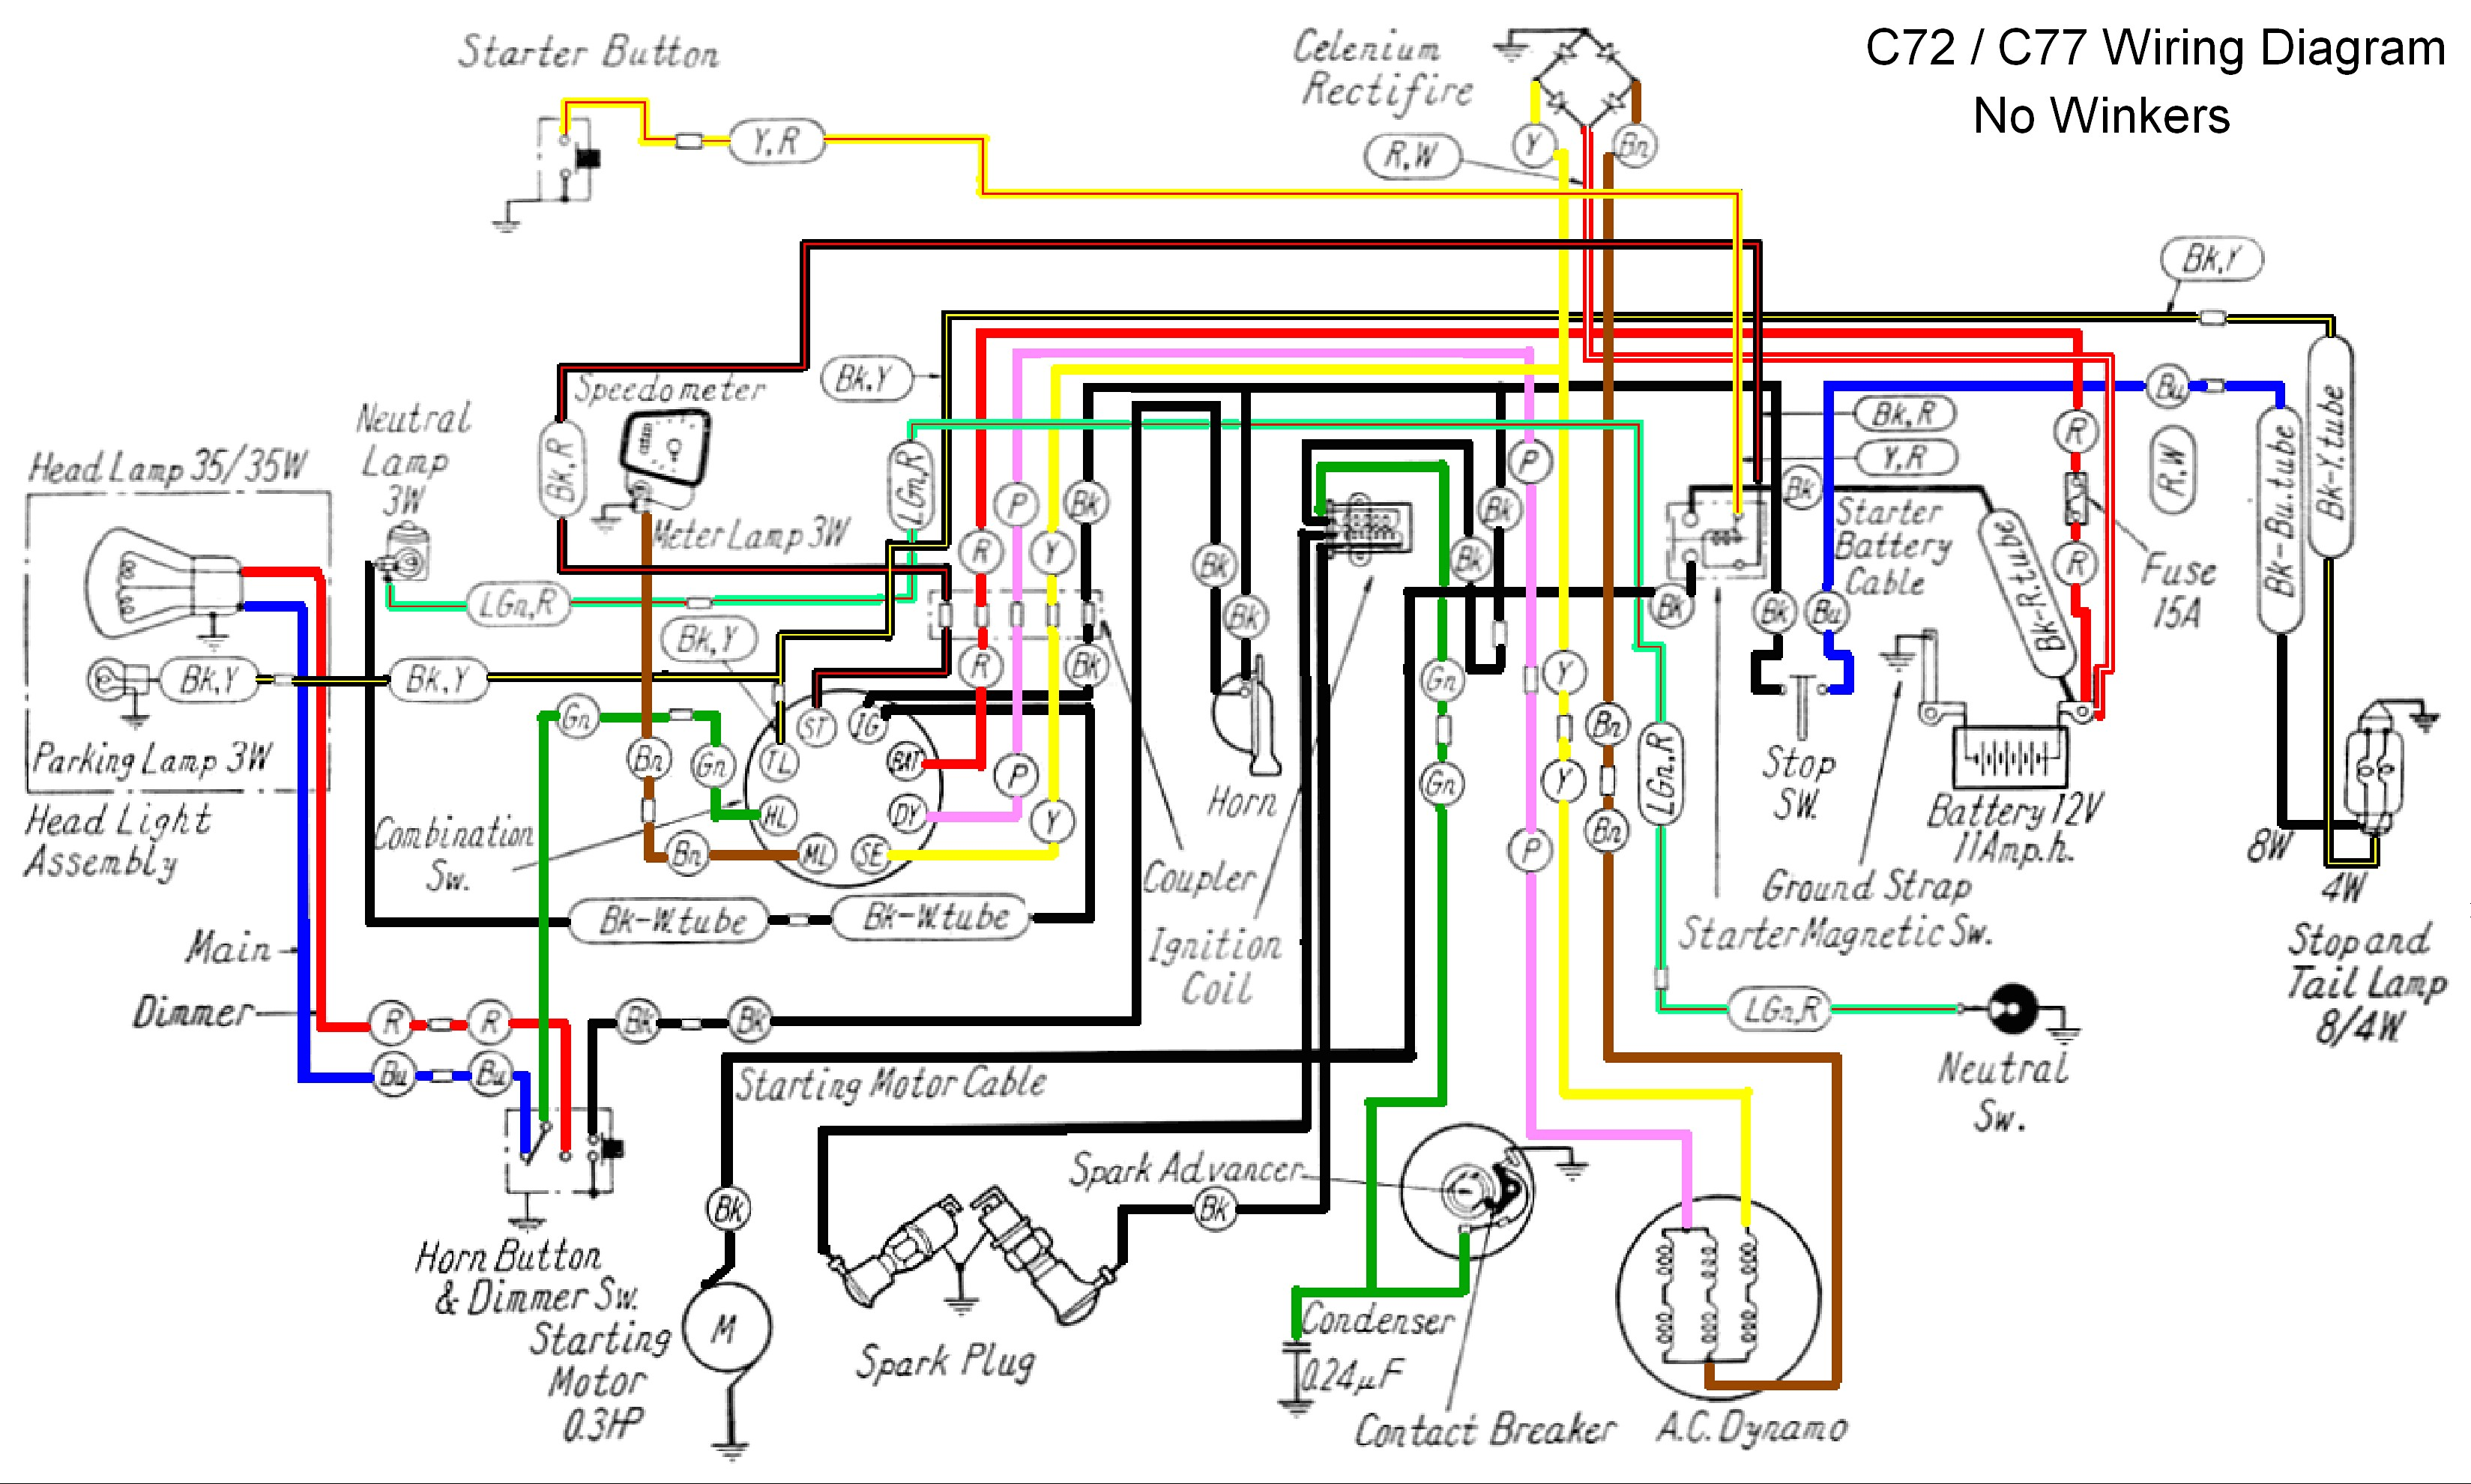 49cc Pocket Bike Ignition Coil Wire Diagram As Well Chinese Atv Wiring